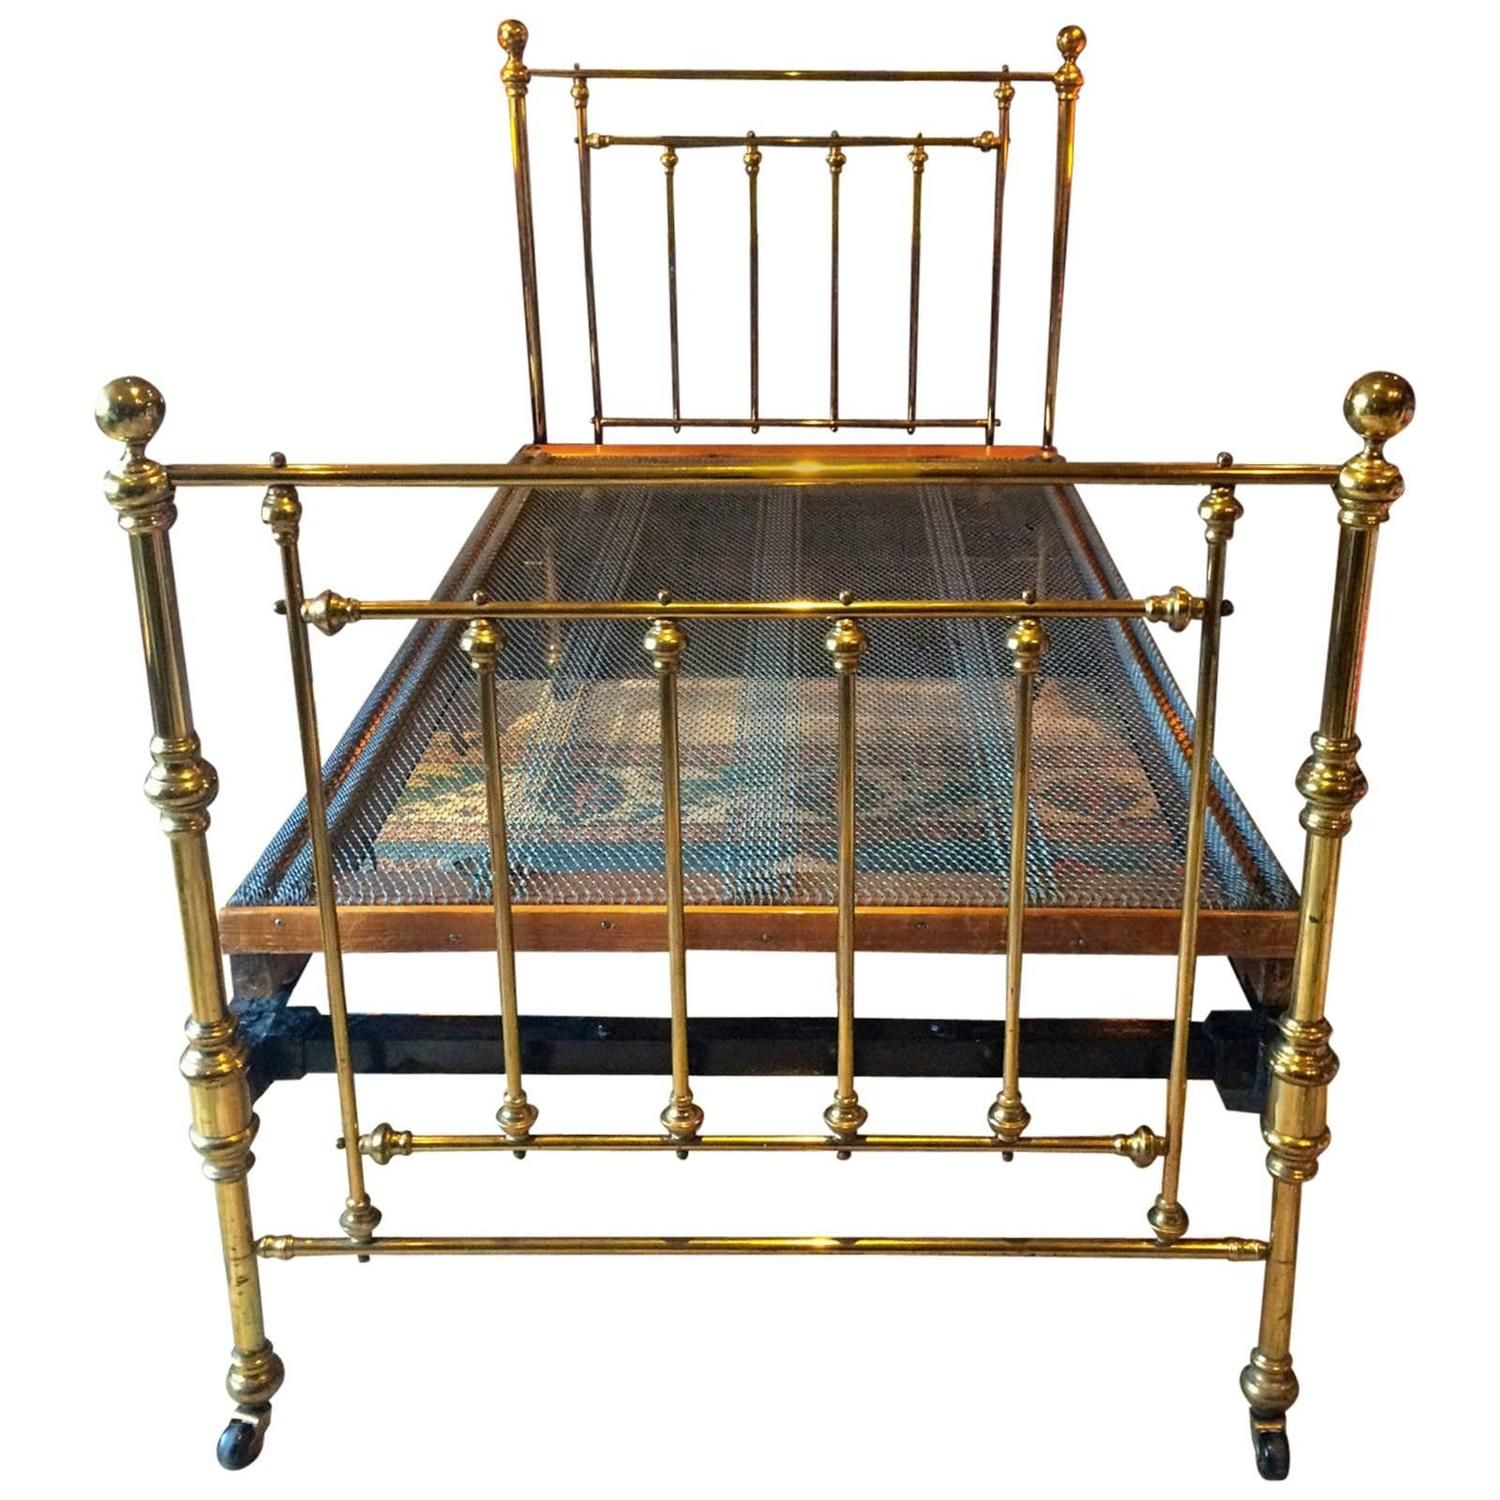 Antique Bed Victorian Single Brass Bed 19th Century Base Casters